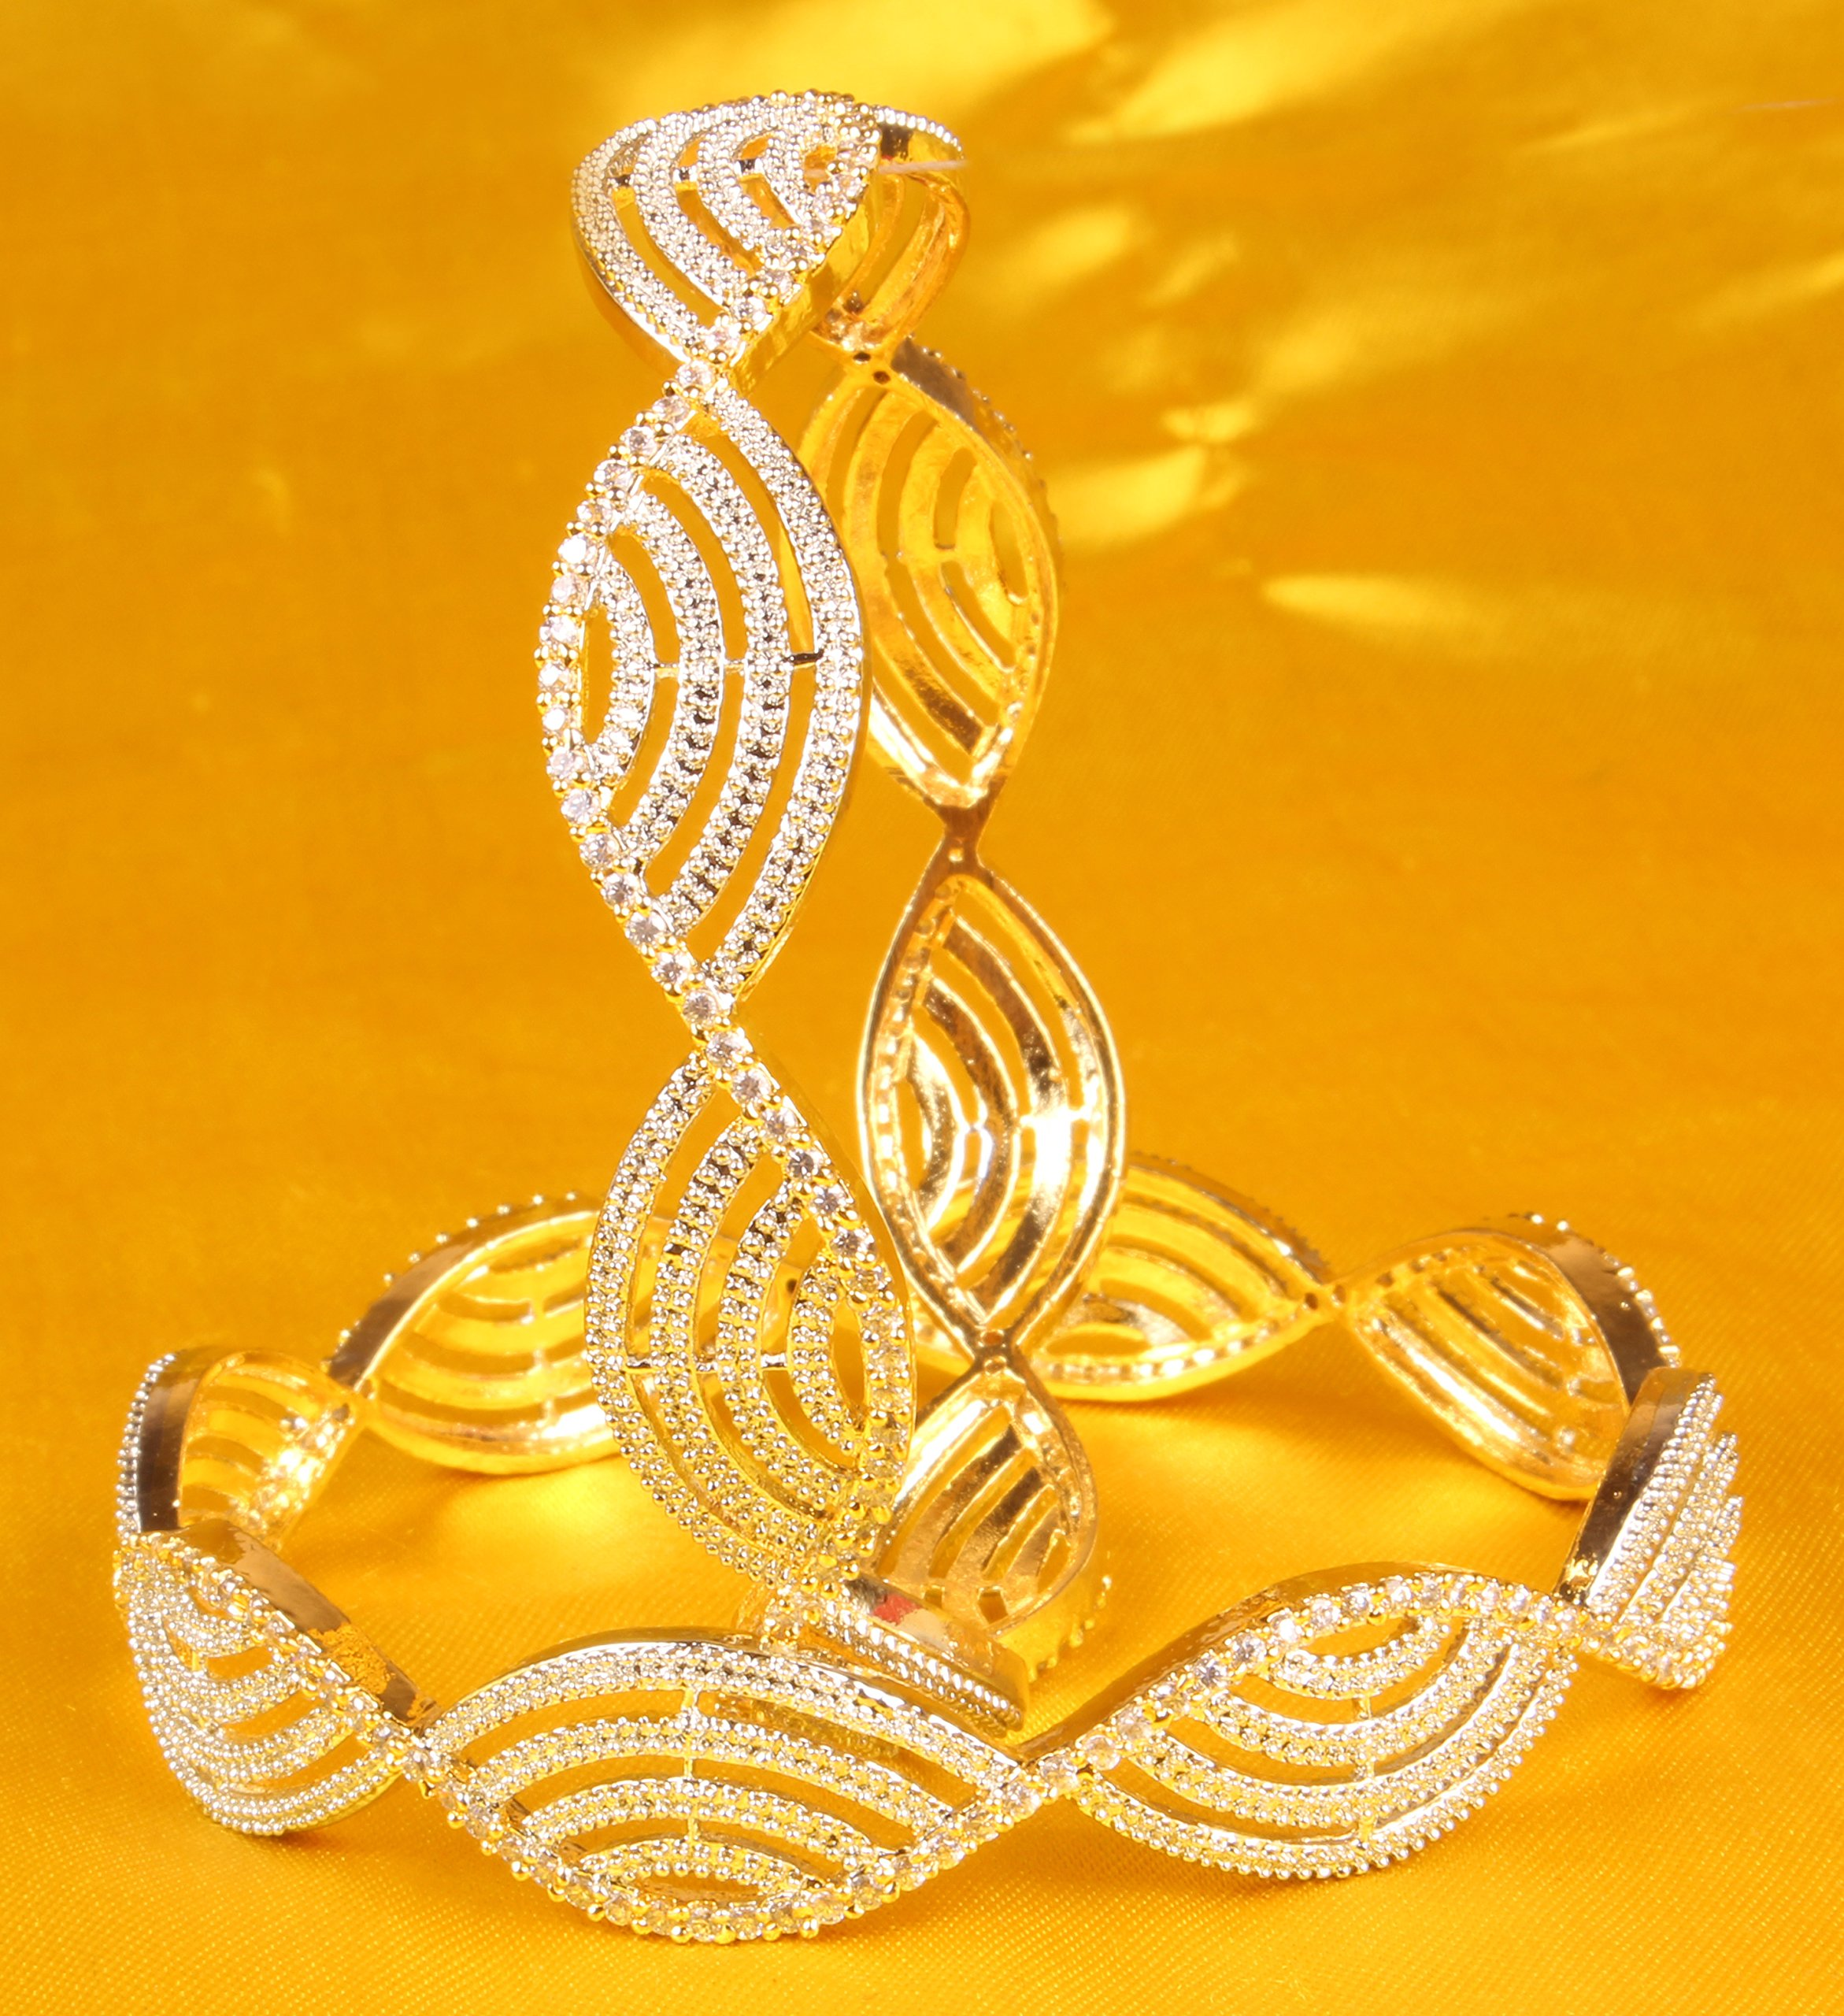 Ethnic Traditional Bollywood Style Gold Tone Indian Bangle Jewelry by Shiv_Collection (Image #2)